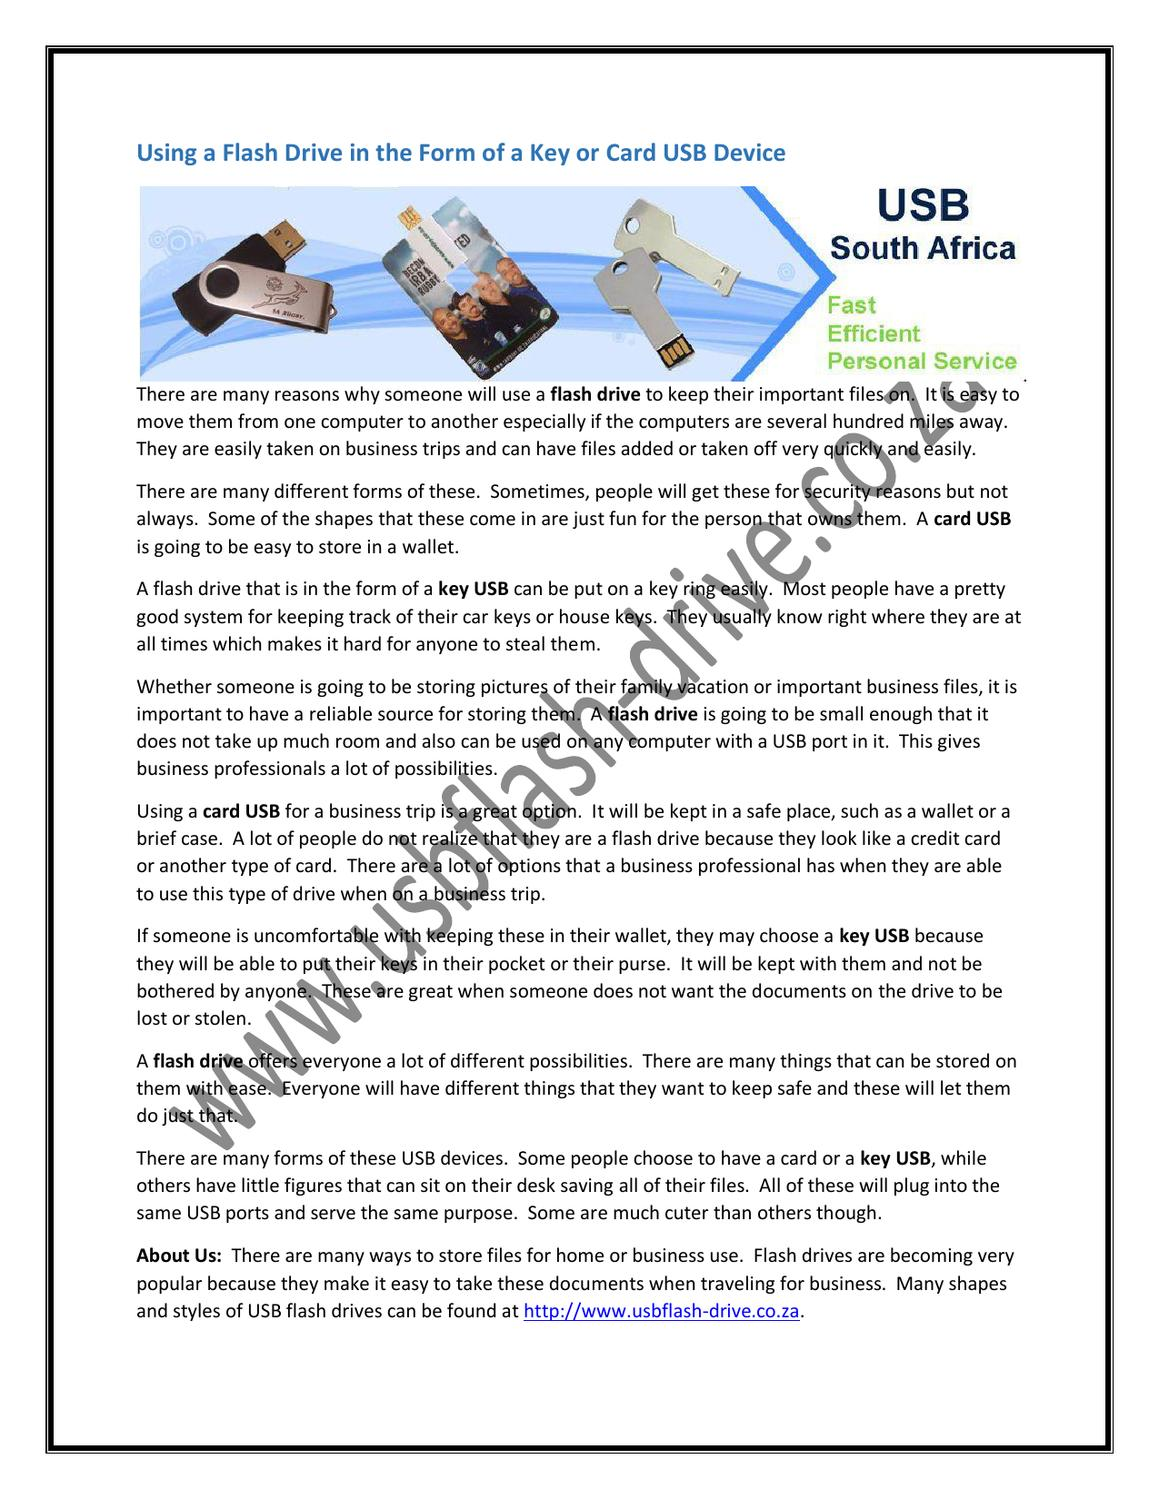 Using a Flash Drive in the Form of a Key or Card USB Device